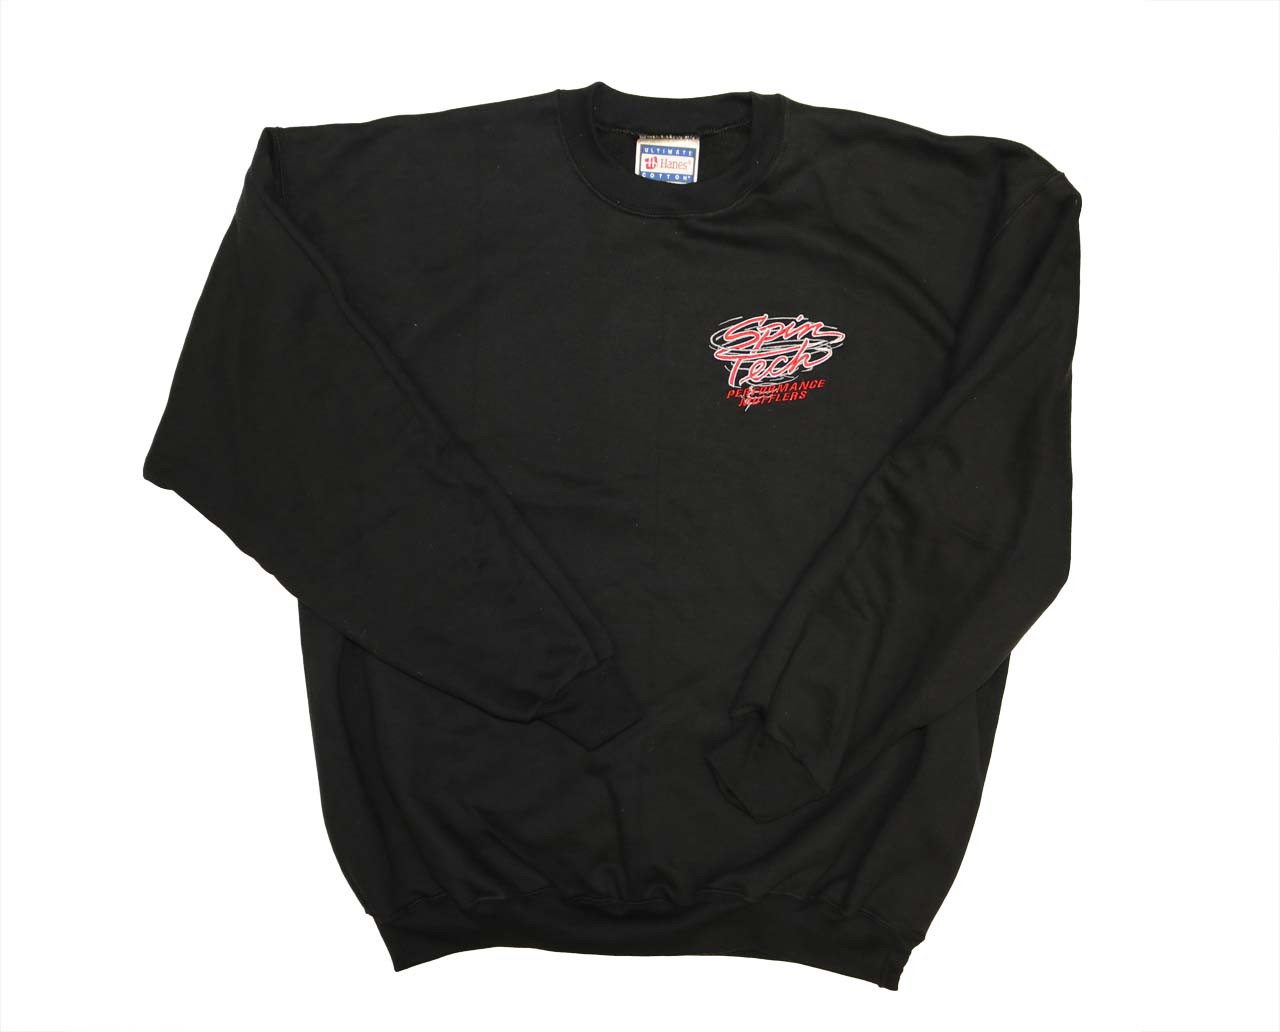 SpinTech Black Sweat Shirt